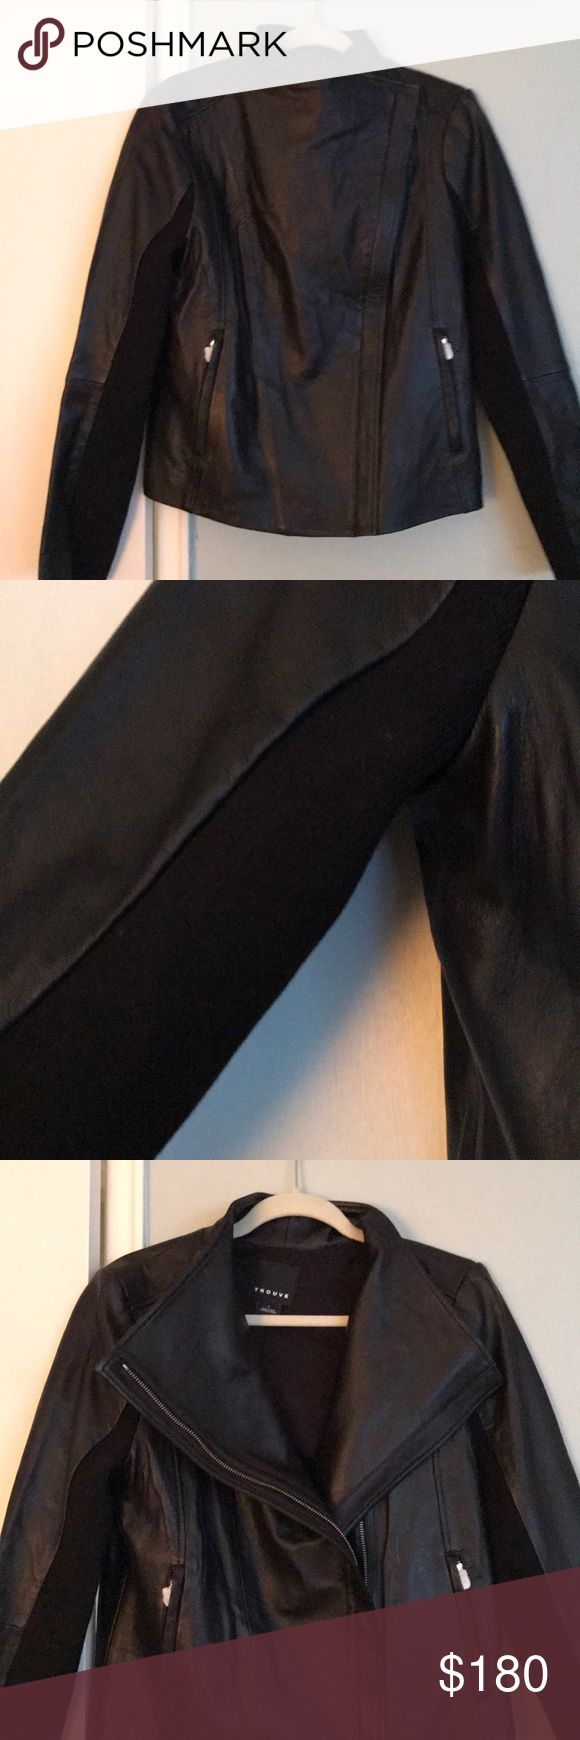 NWOT Trouve Leather Jacket from Nordstrom, L Never worn!  This jacket is in perfect condition.  Soft, buttery leather.  Black, size large.  Moto style with ribbed material under arm.  Seems to run a tad small.  This is in stock at Nordstrom now!  Please let me know if you have any questions. Trouve Jackets & Coats Blazers